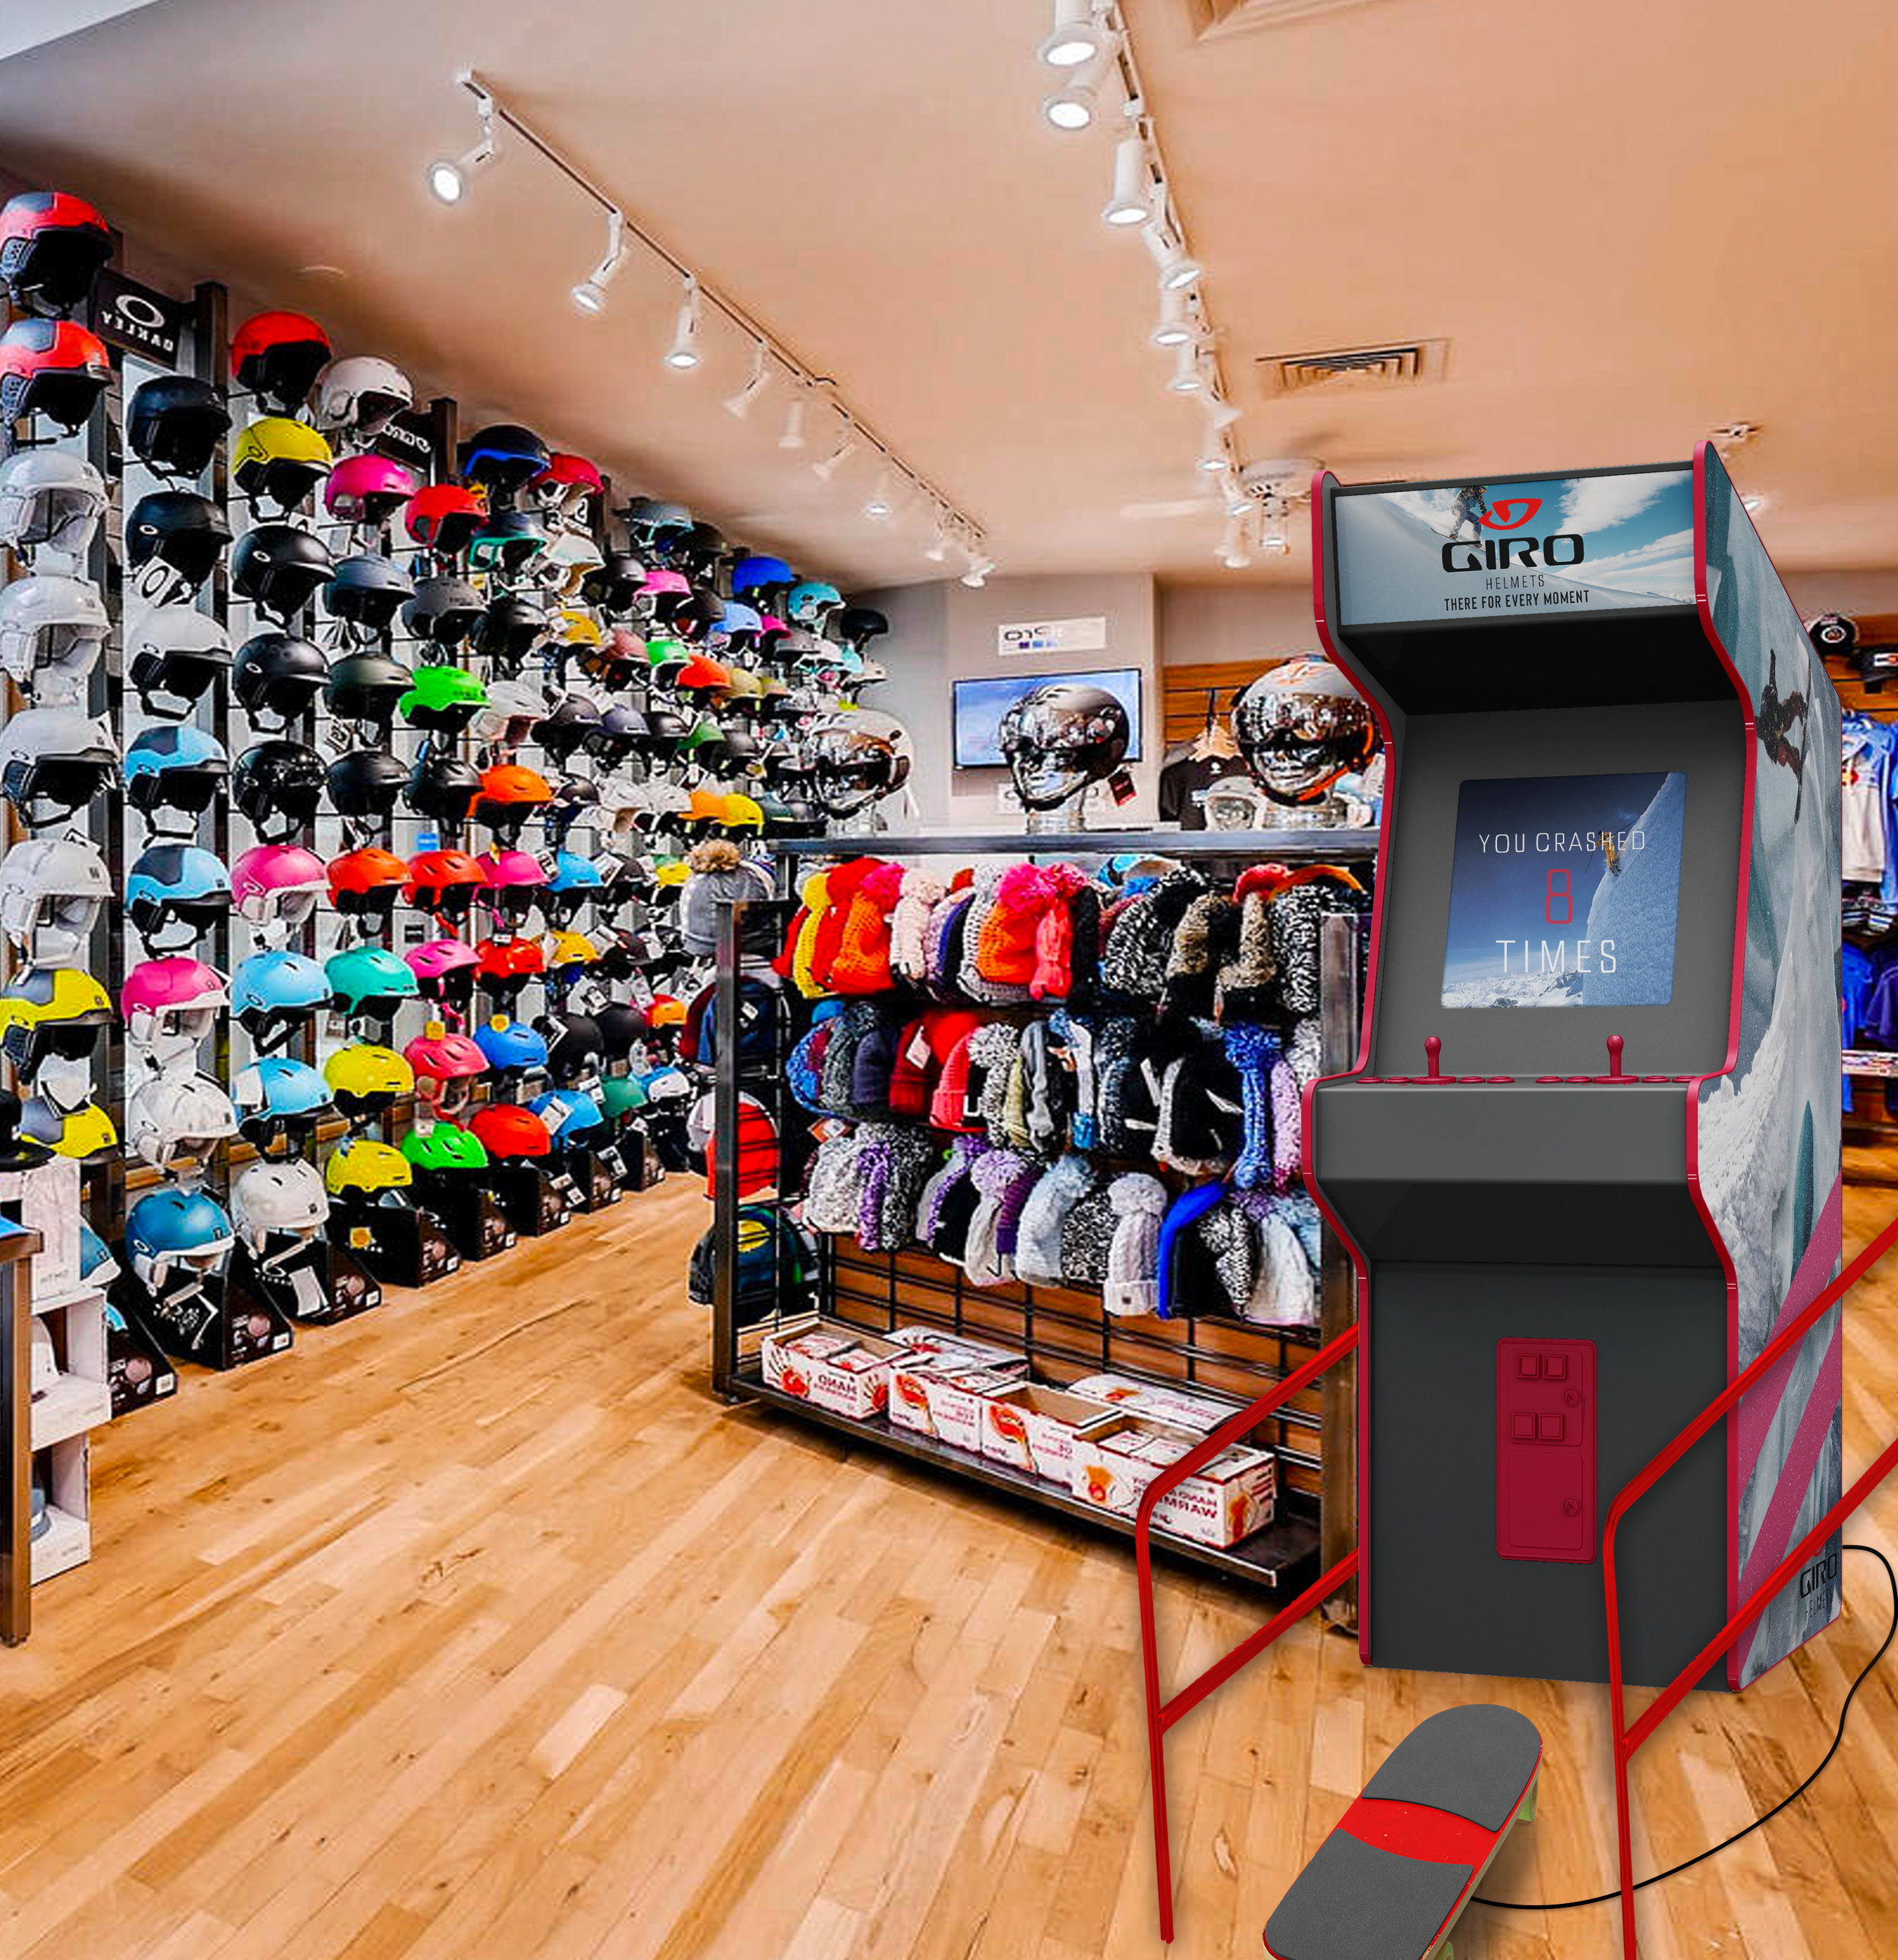 Arcade-style mountain biking and snowboarding games are placed in stores to put customers in the nerve-wracking situations they can expect in these sports. At the end of each game, customers see how many times they crashed and are given a CTA to buy a Giro helmet.